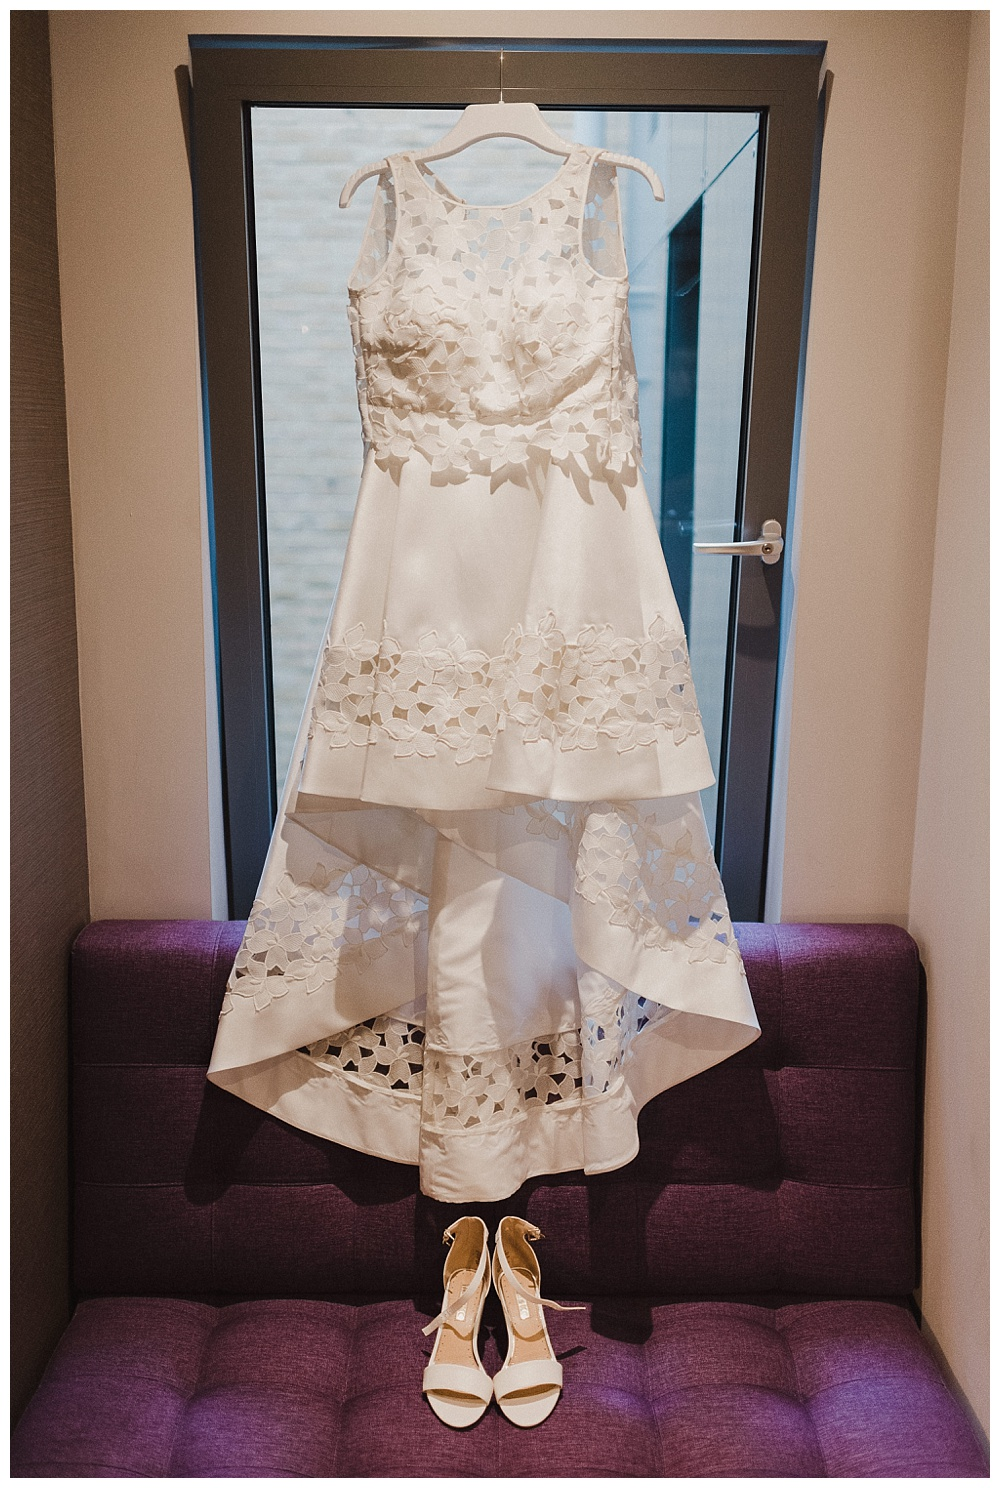 Bride's wedding dress in her room at the courthouse hotel